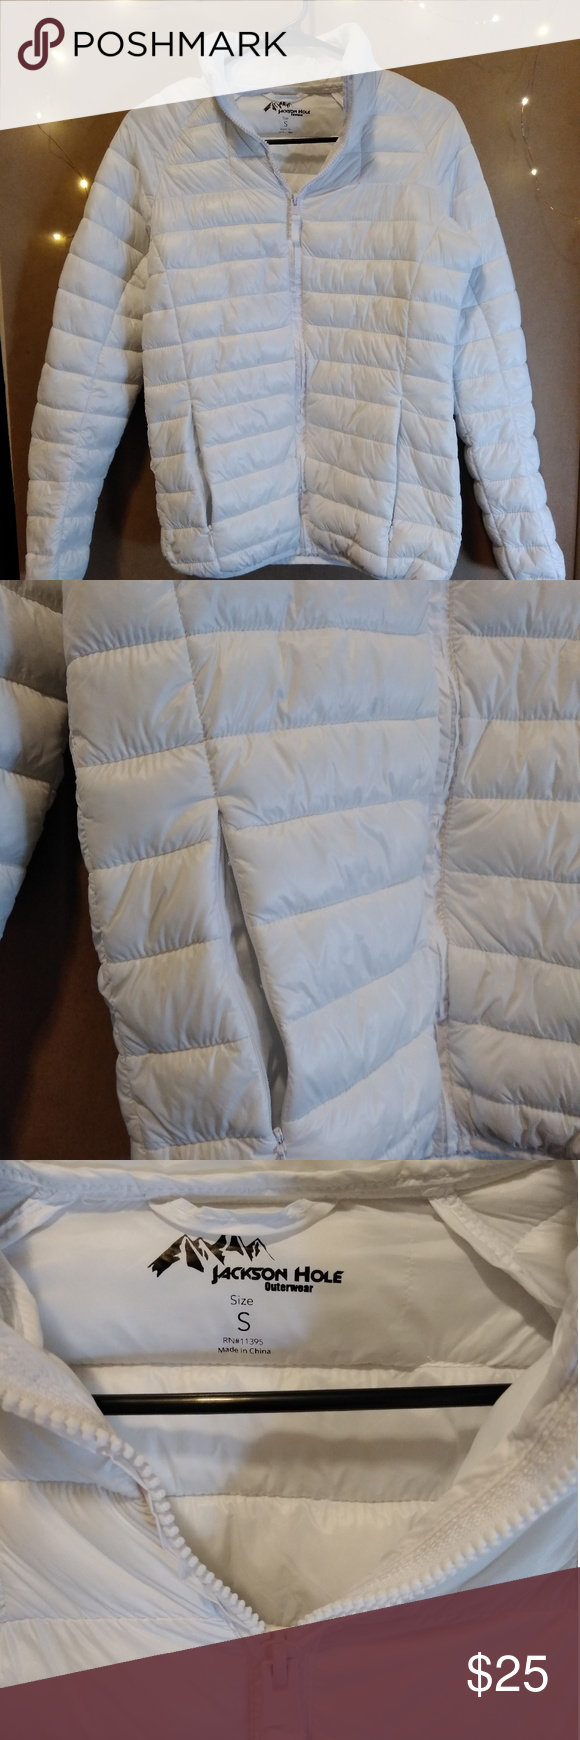 White Puffer Jacket Jackson Hole Outerwear Small Clothes Design Jackets Outerwear Jackets [ 1740 x 580 Pixel ]